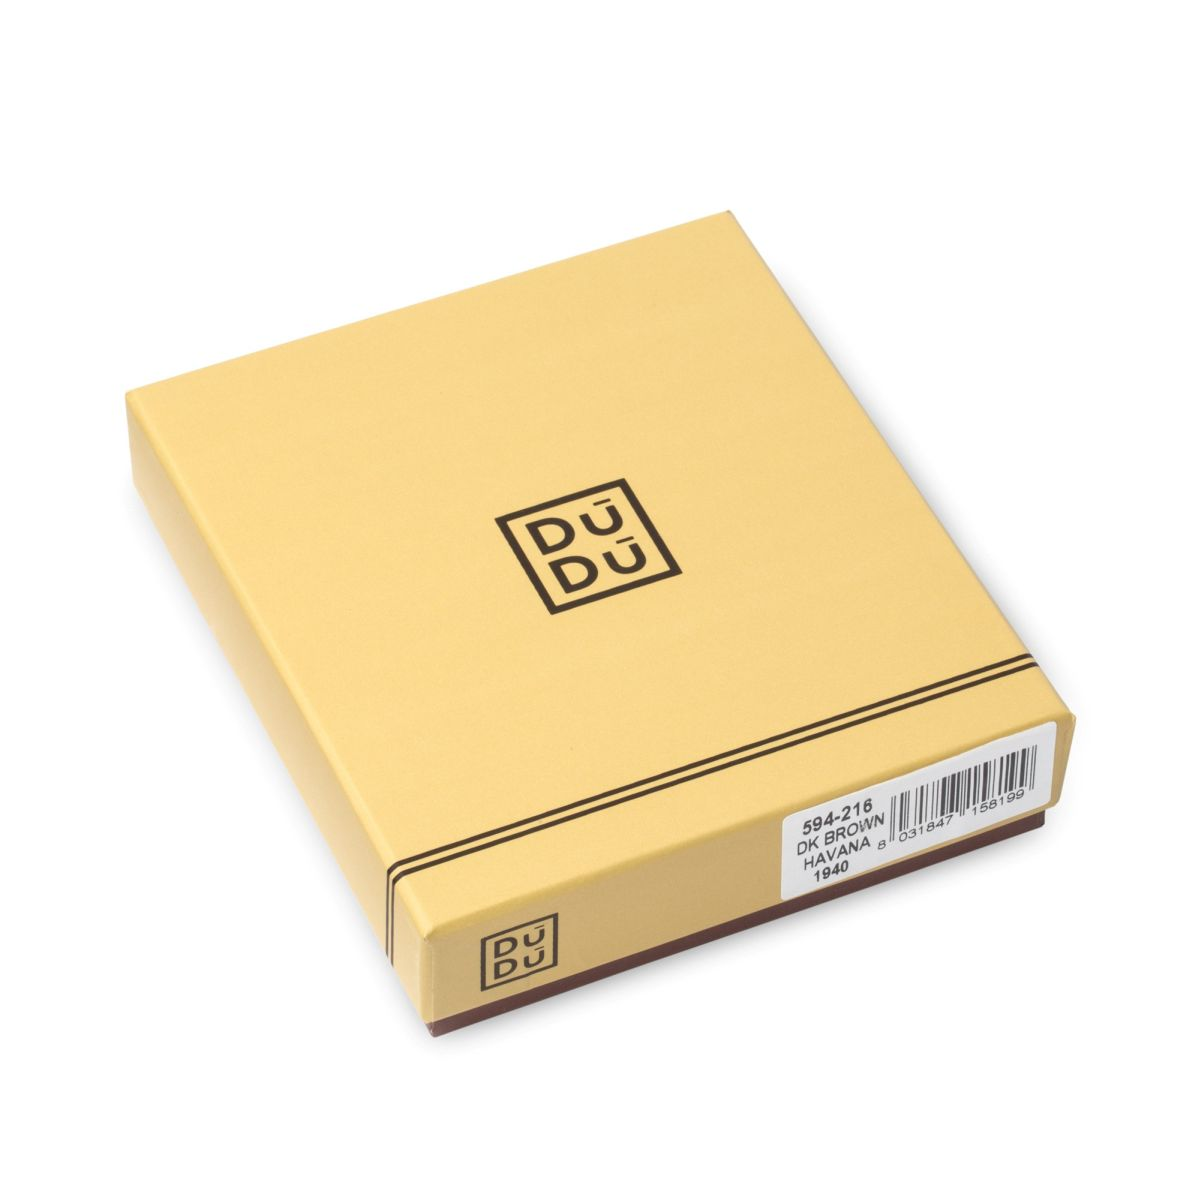 DuDu Small Unique Wallet  - Black